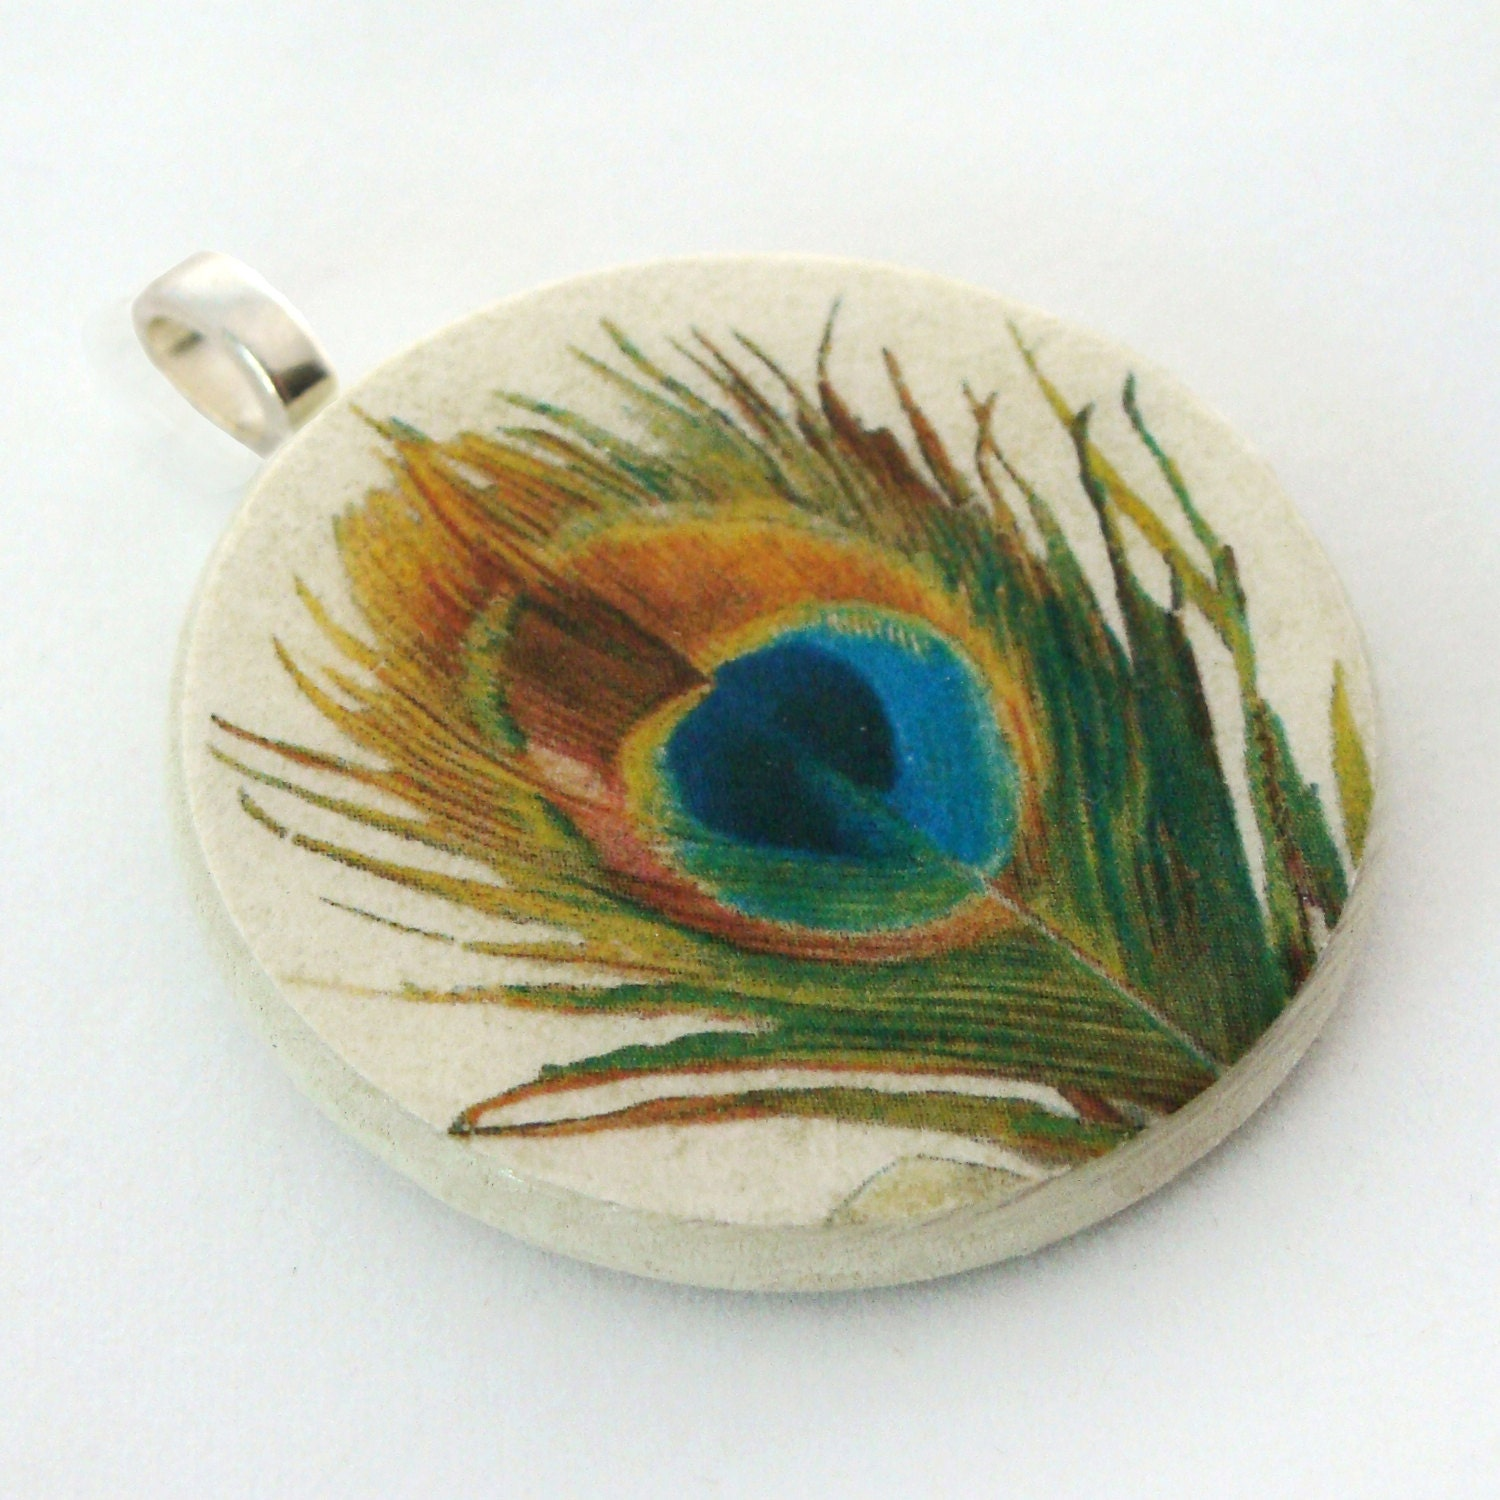 Pendant, Vintage Peacock Feather, Handmade Decoupaged, FREE SHIPPING - retropage